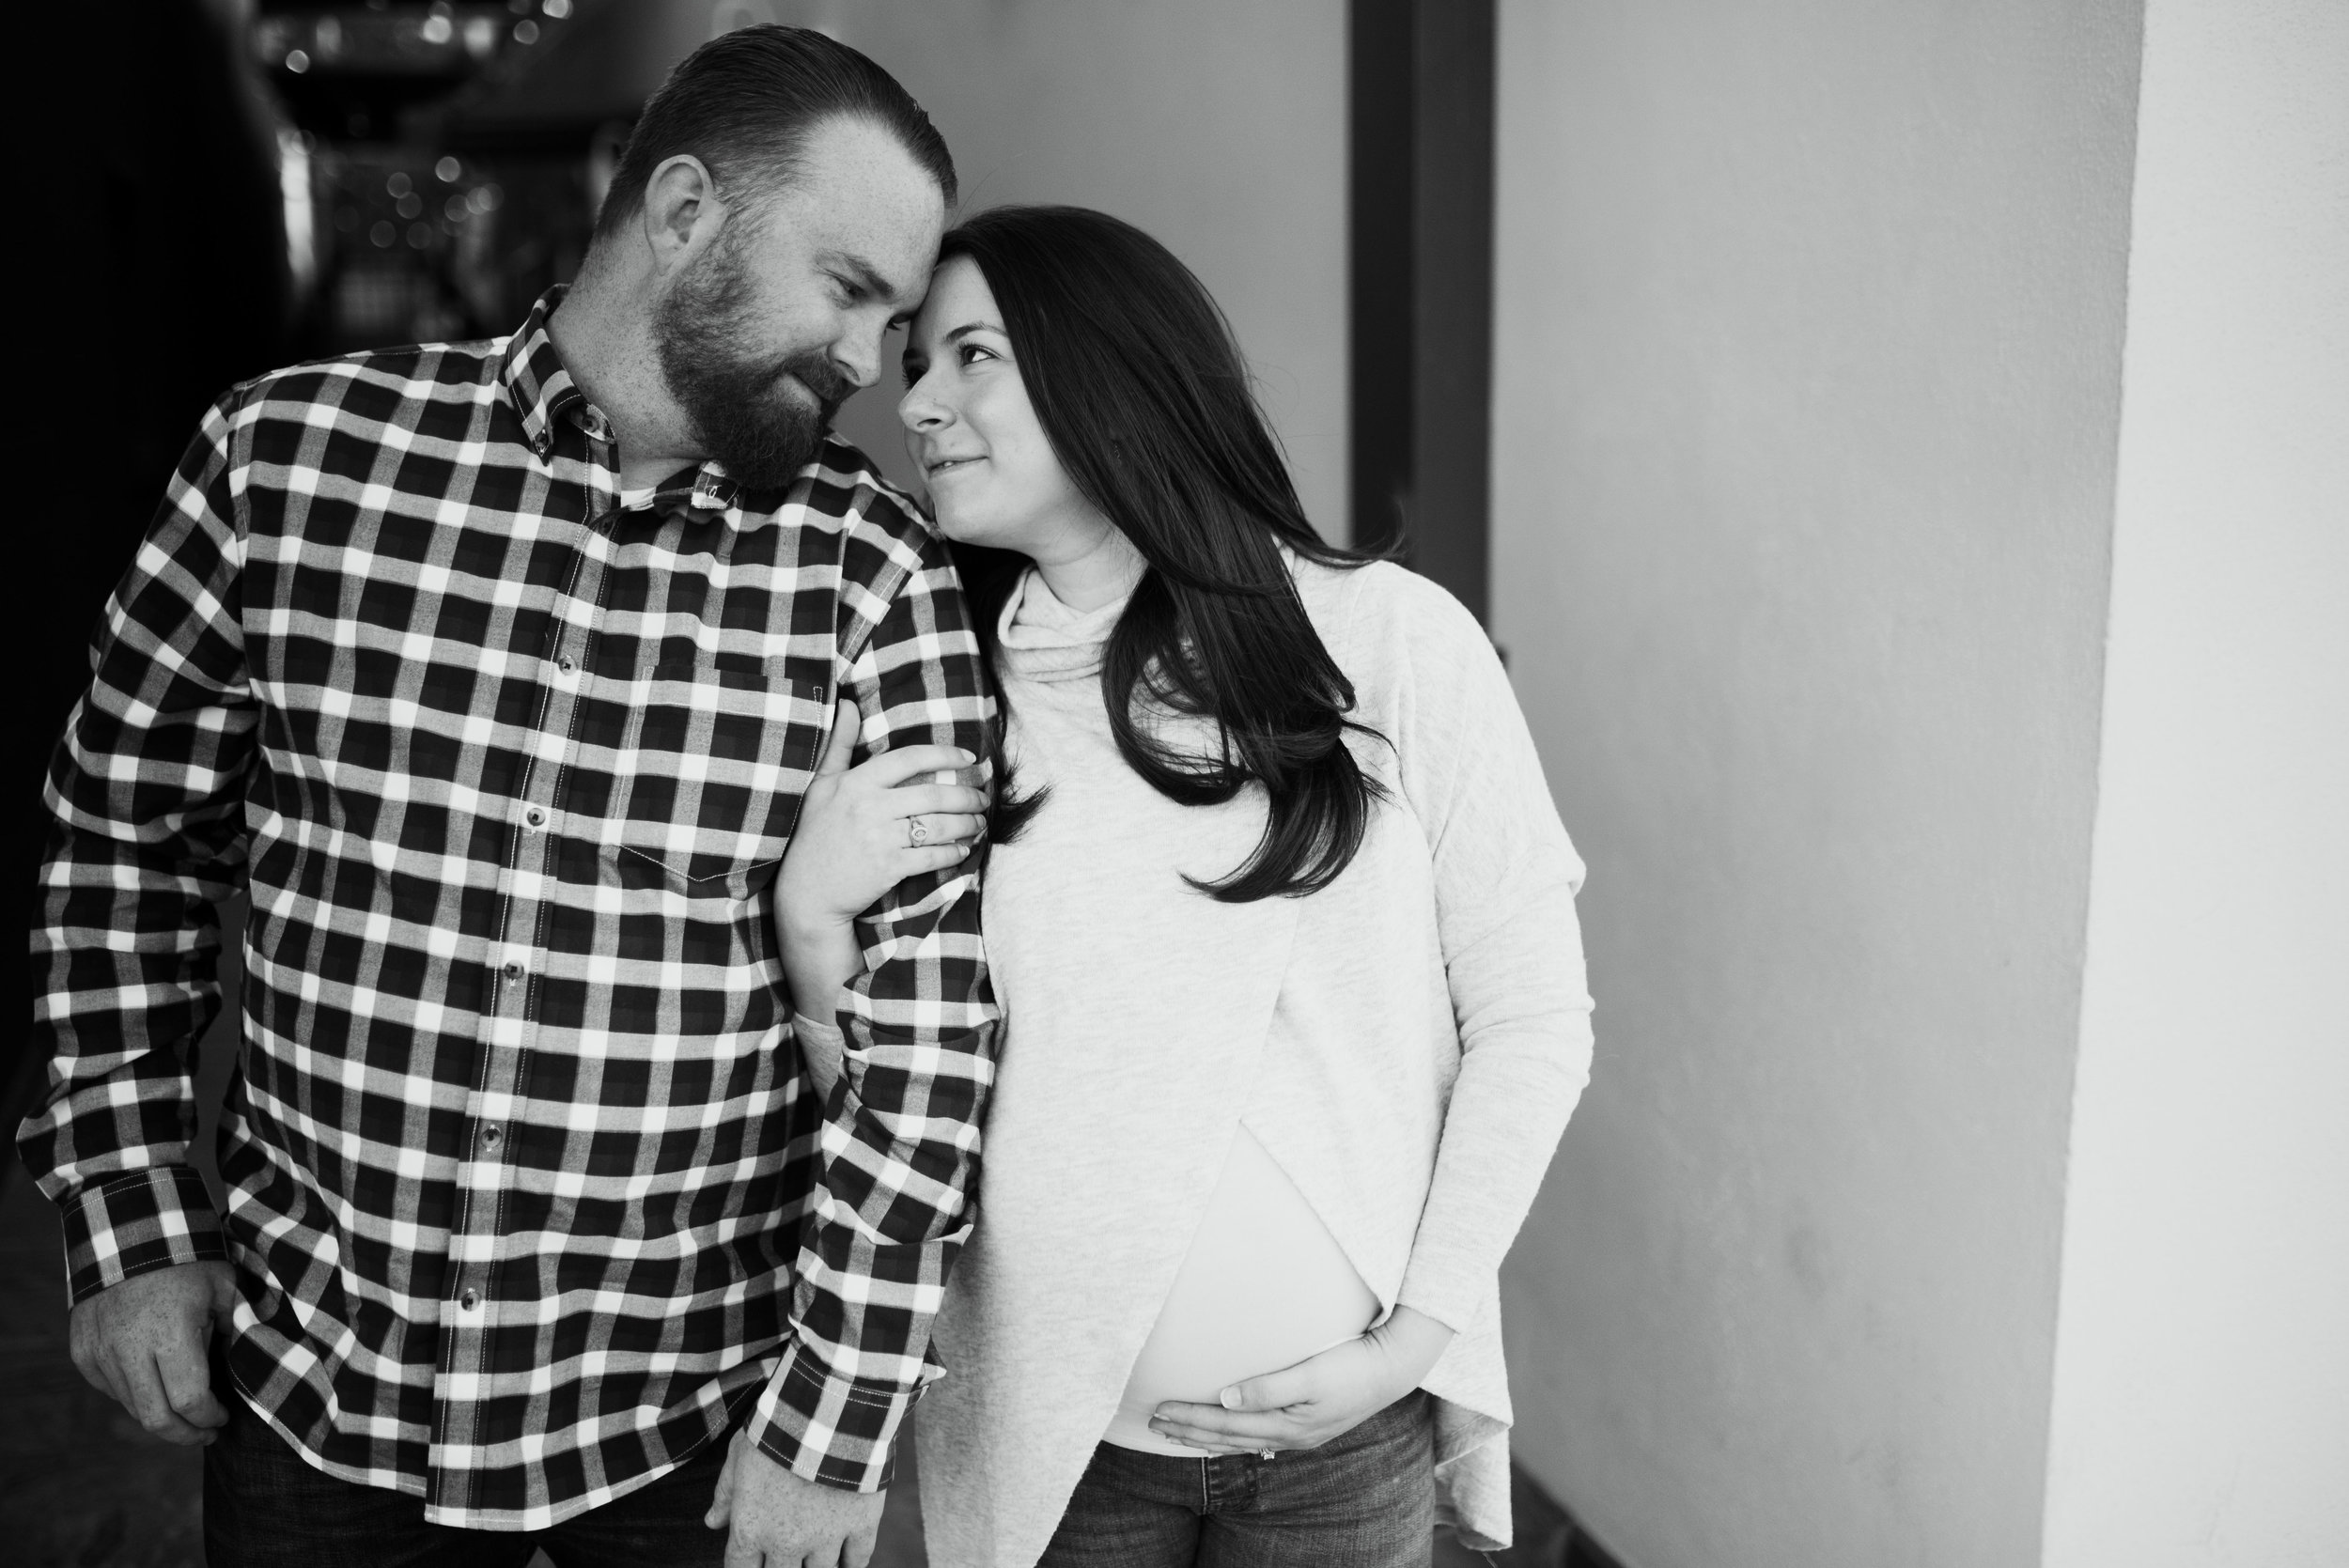 Houston Heights Maternity Session | Houston Natural Light Photographer | www.jordanmitchellphotography.com